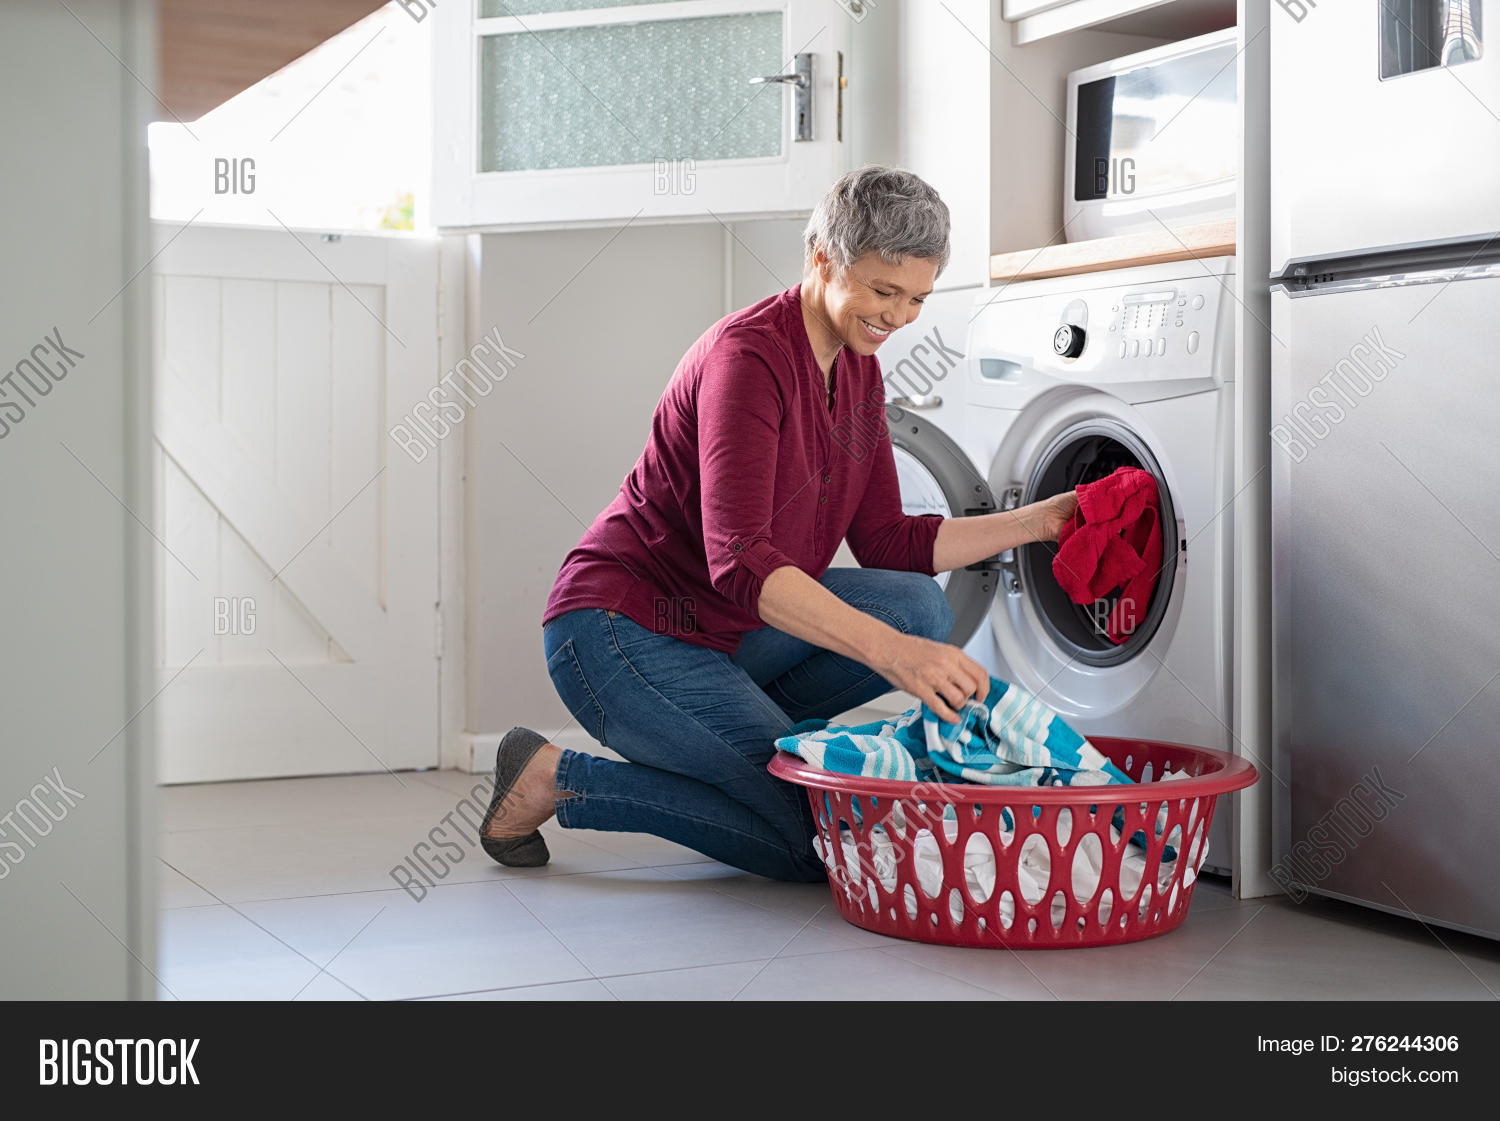 50s,60s,appliance,basket,casual,chores,clean,cloth,clothes,clothing,crouching,daily,dirty,dirty clothes,dryer,gray hair,happy,home,house work,household,housekeeper,housekeeping,housewife,housework,hygiene,indoors,kneeling,laundering,laundry,laundry basket,loading,machine,mature,matured,mid adult woman,middle aged woman,old woman,people,putting,routine,senior,senior woman,smile,toothy smile,washer,washing,washing machine,wife,work